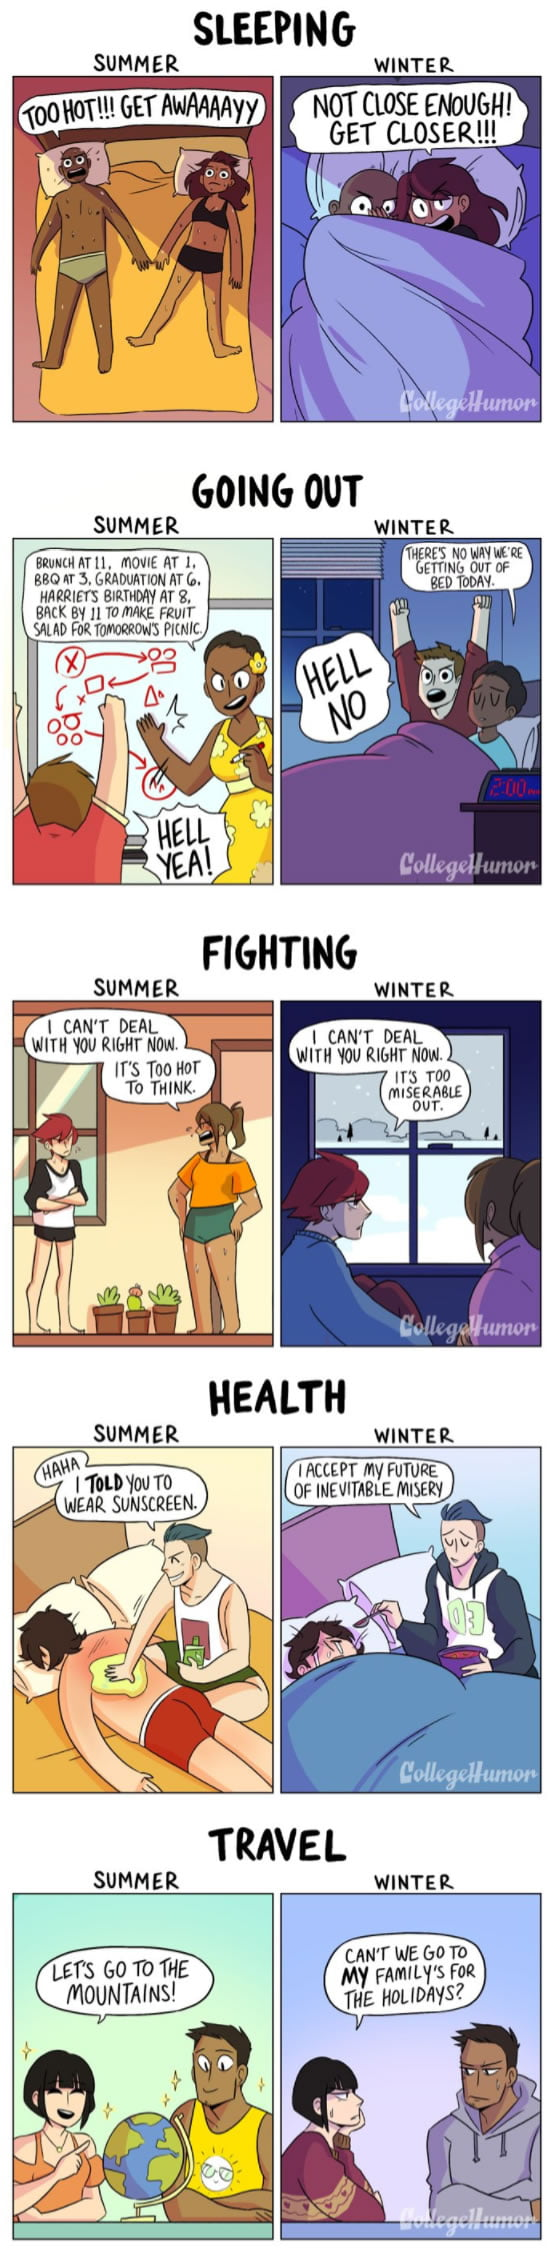 Relationships: Summer vs. Winter